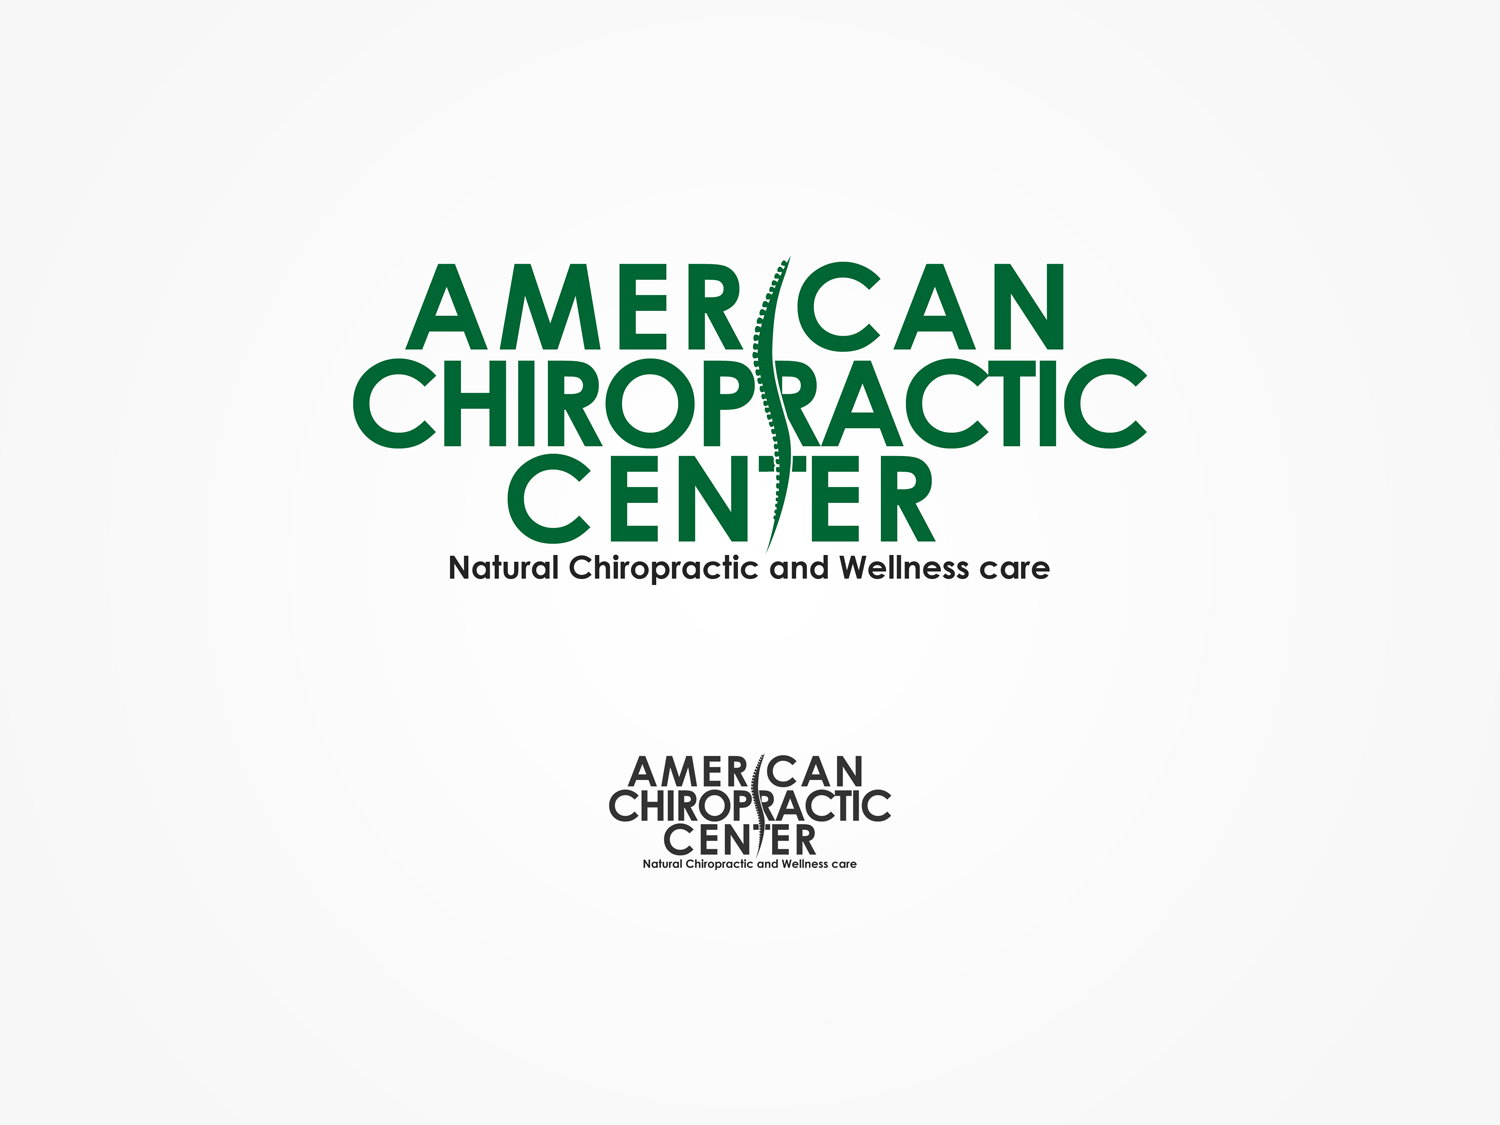 Logo Design by Qoaldjsk - Entry No. 242 in the Logo Design Contest Logo Design for American Chiropractic Center.